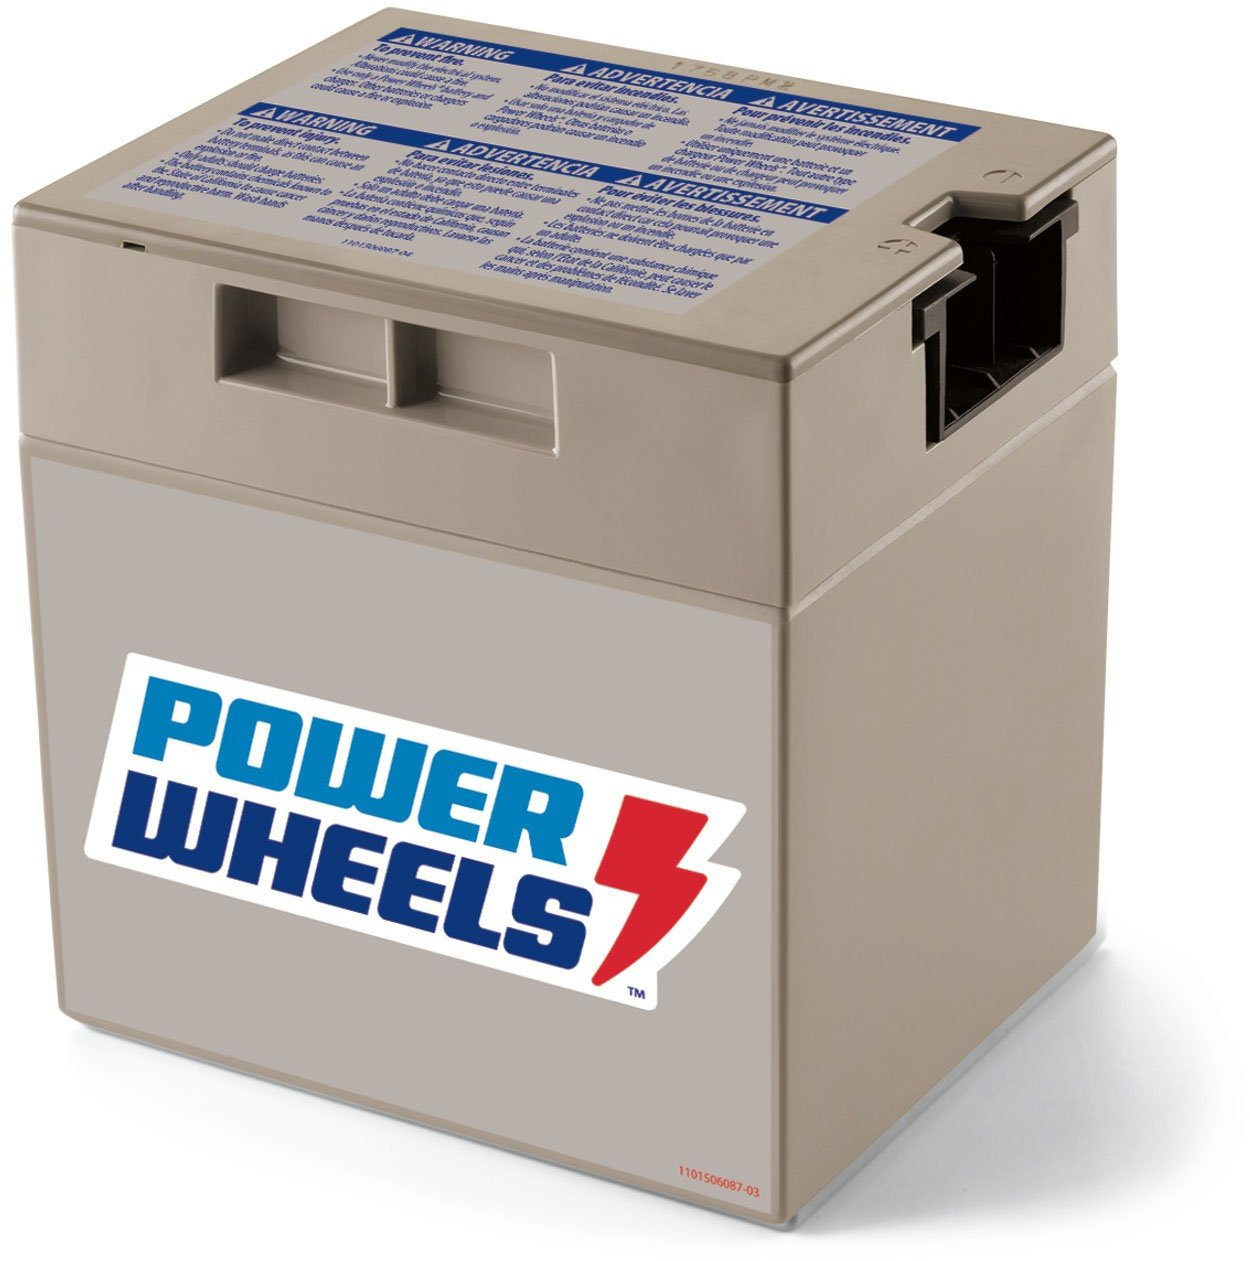 Power Wheels 12-Volt Rechargeable Replacement Battery 74777